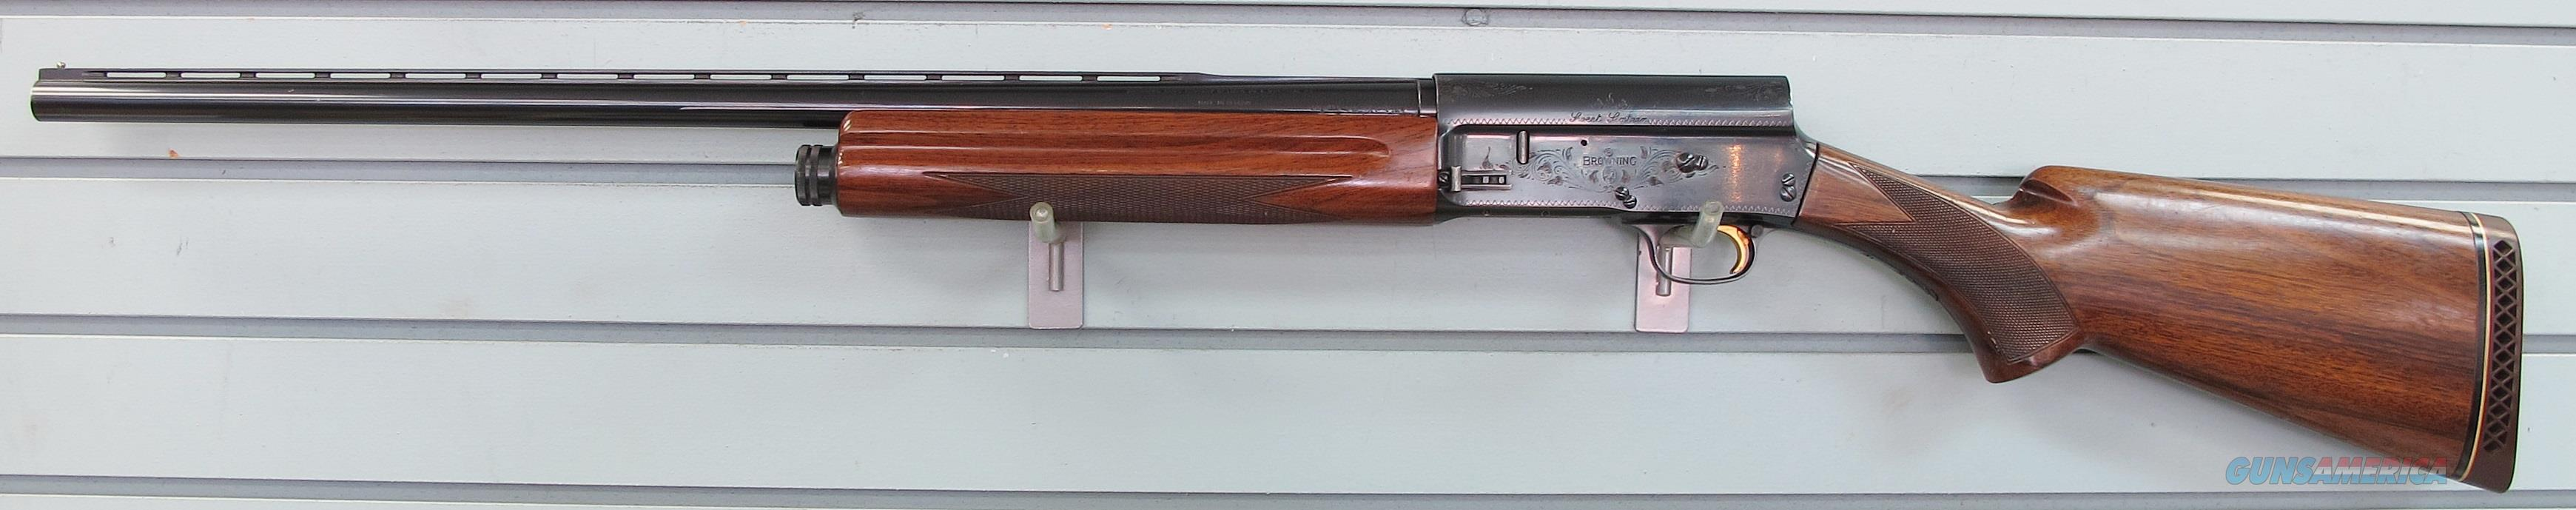 BROWNING BELGIUM A5 SWEET SIXTEEN  Guns > Shotguns > Browning Shotguns > Autoloaders > Hunting